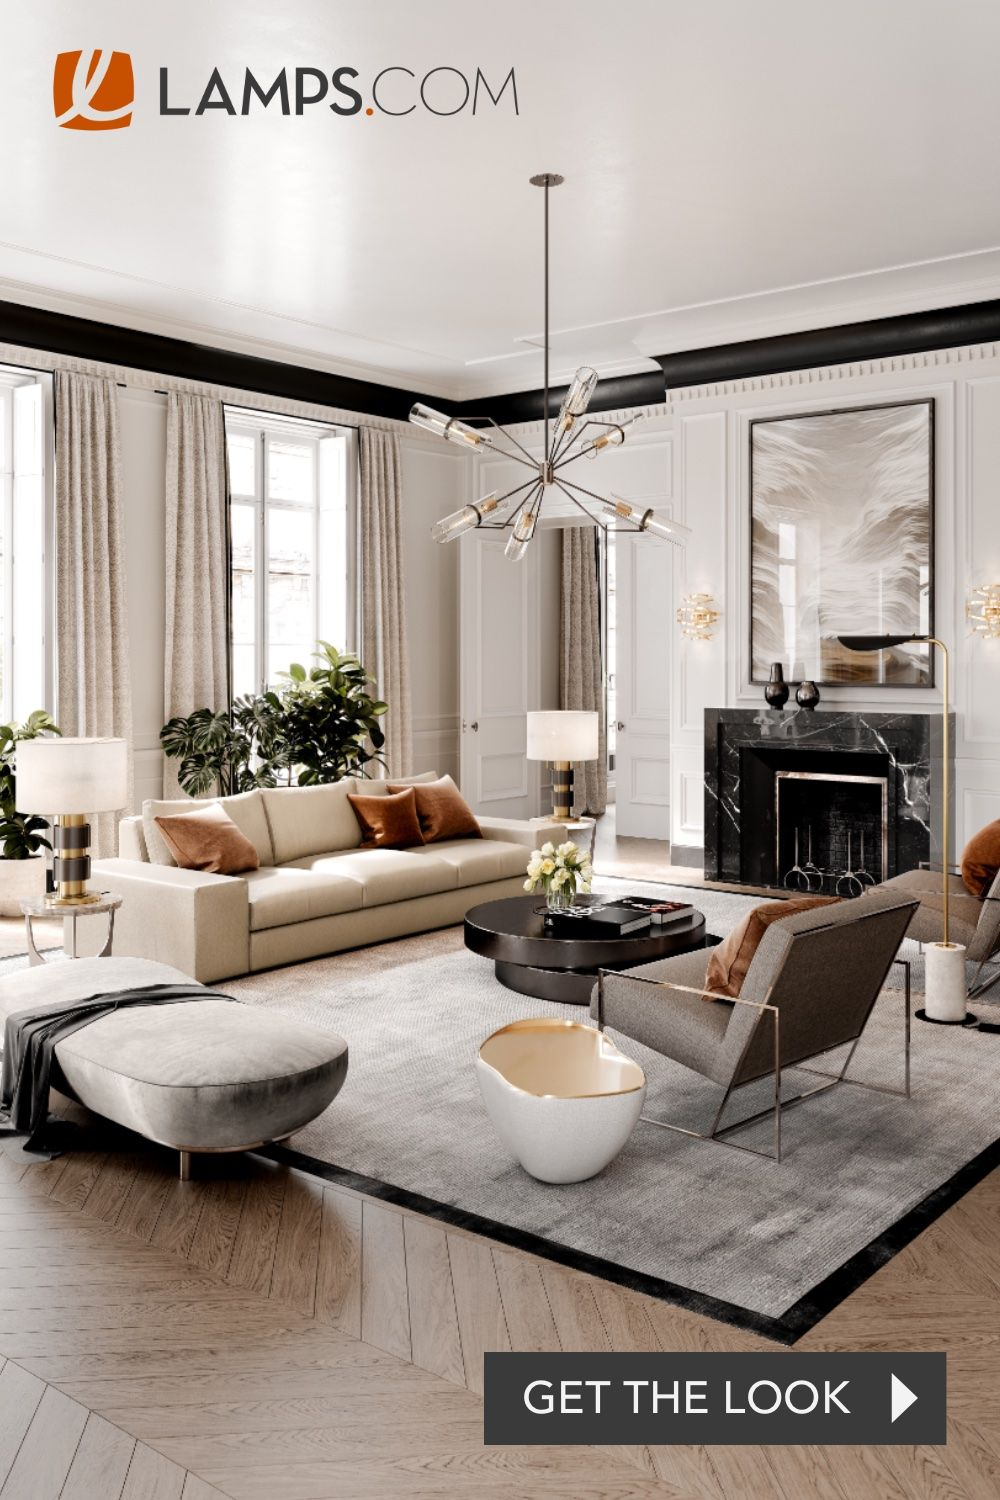 Get The Look With Our Modern Townhome Collection Handpicked By Our In House Design Team In 2020 Elegant Living Room Living Room Scandinavian Rustic Living Room